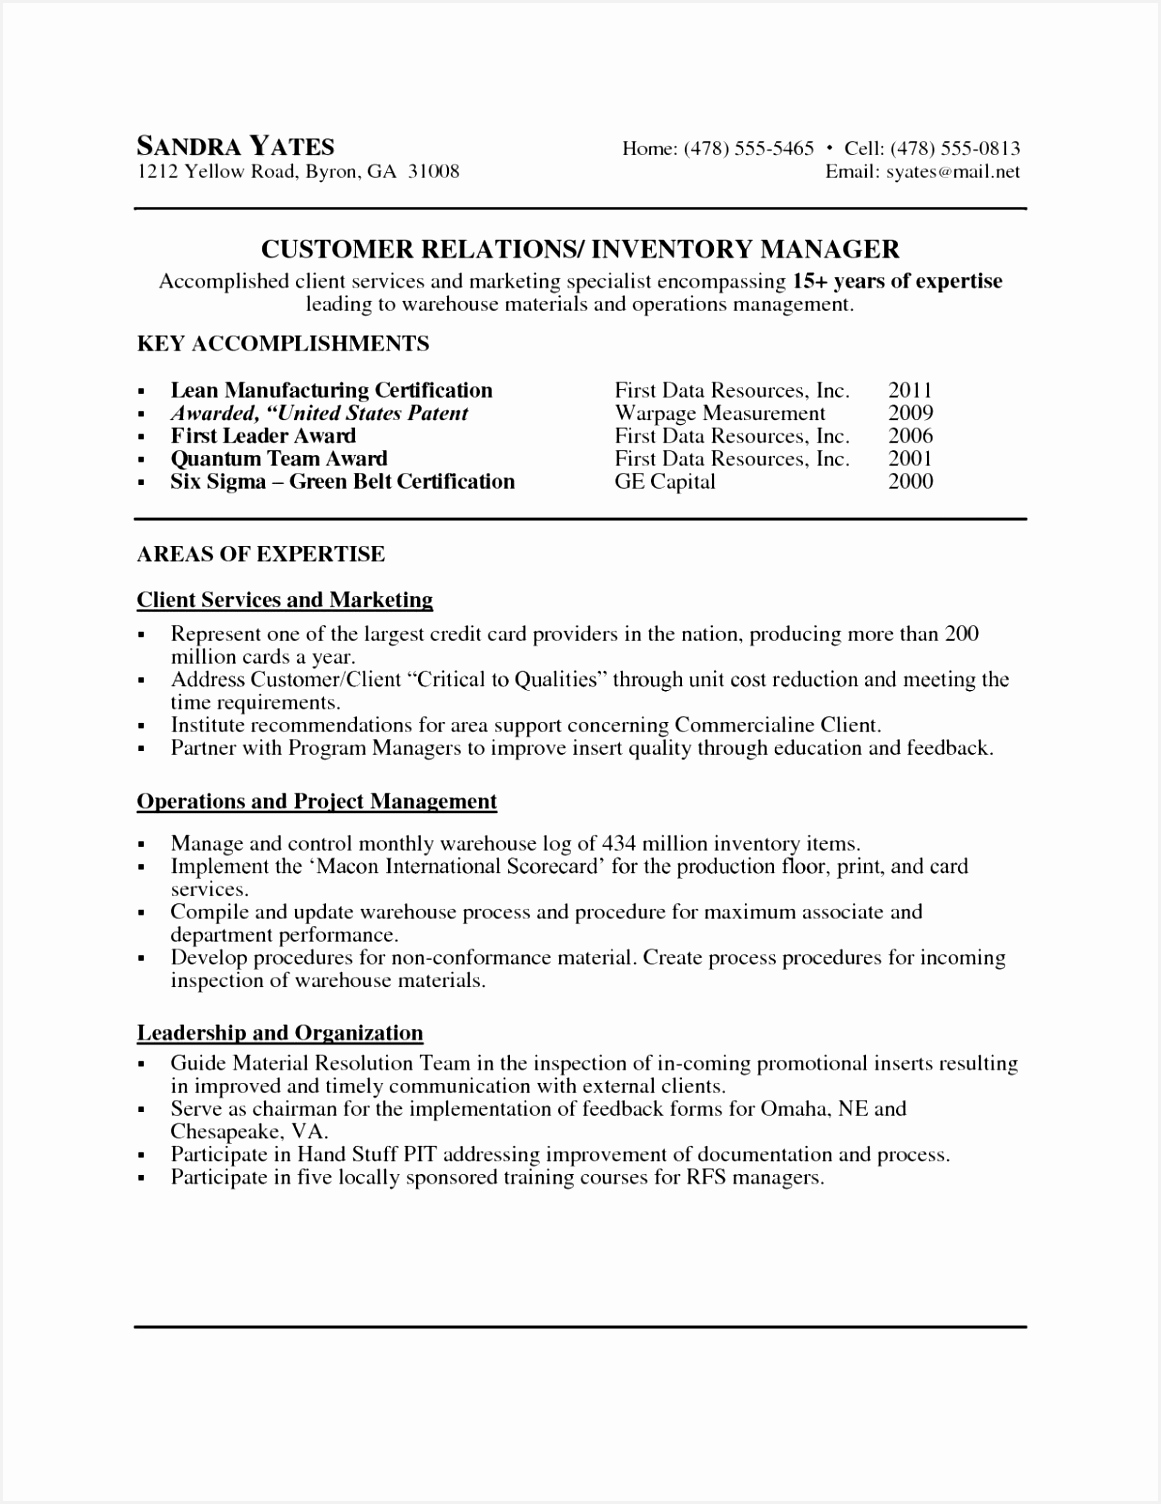 Quality Control Inspector Resume Sample Fghjg Inspirational Recruiter Resume Sample — Resumes Project Of Quality Control Inspector Resume Sample Fghjg Inspirational Recruiter Resume Sample — Resumes Project